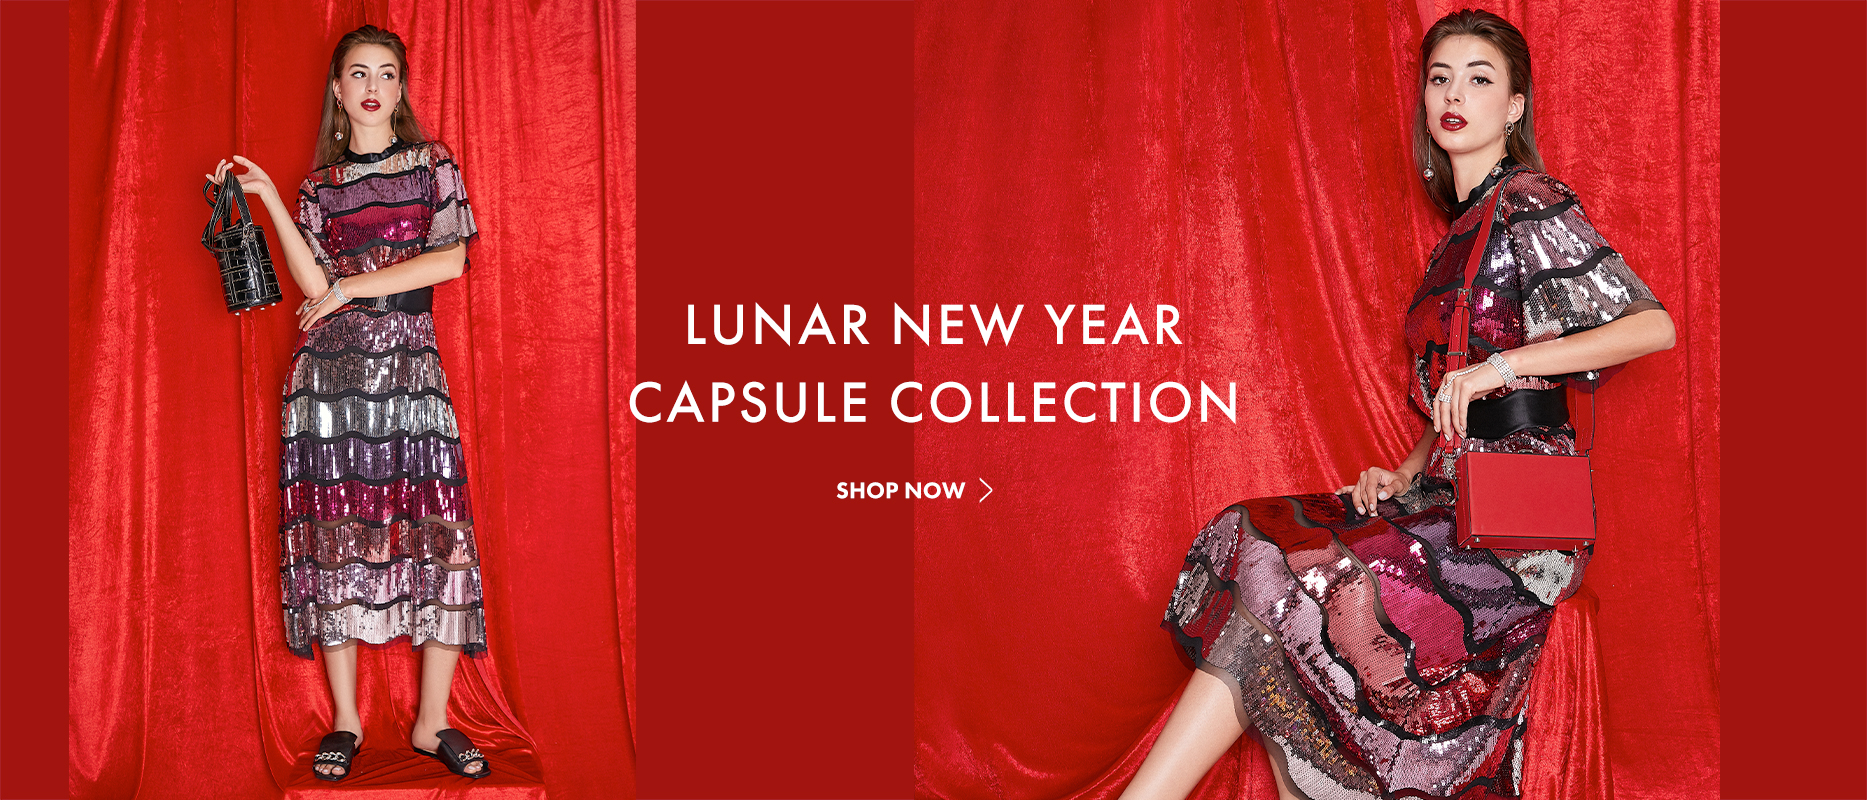 Lunar New Year 2020 Capsule Collection